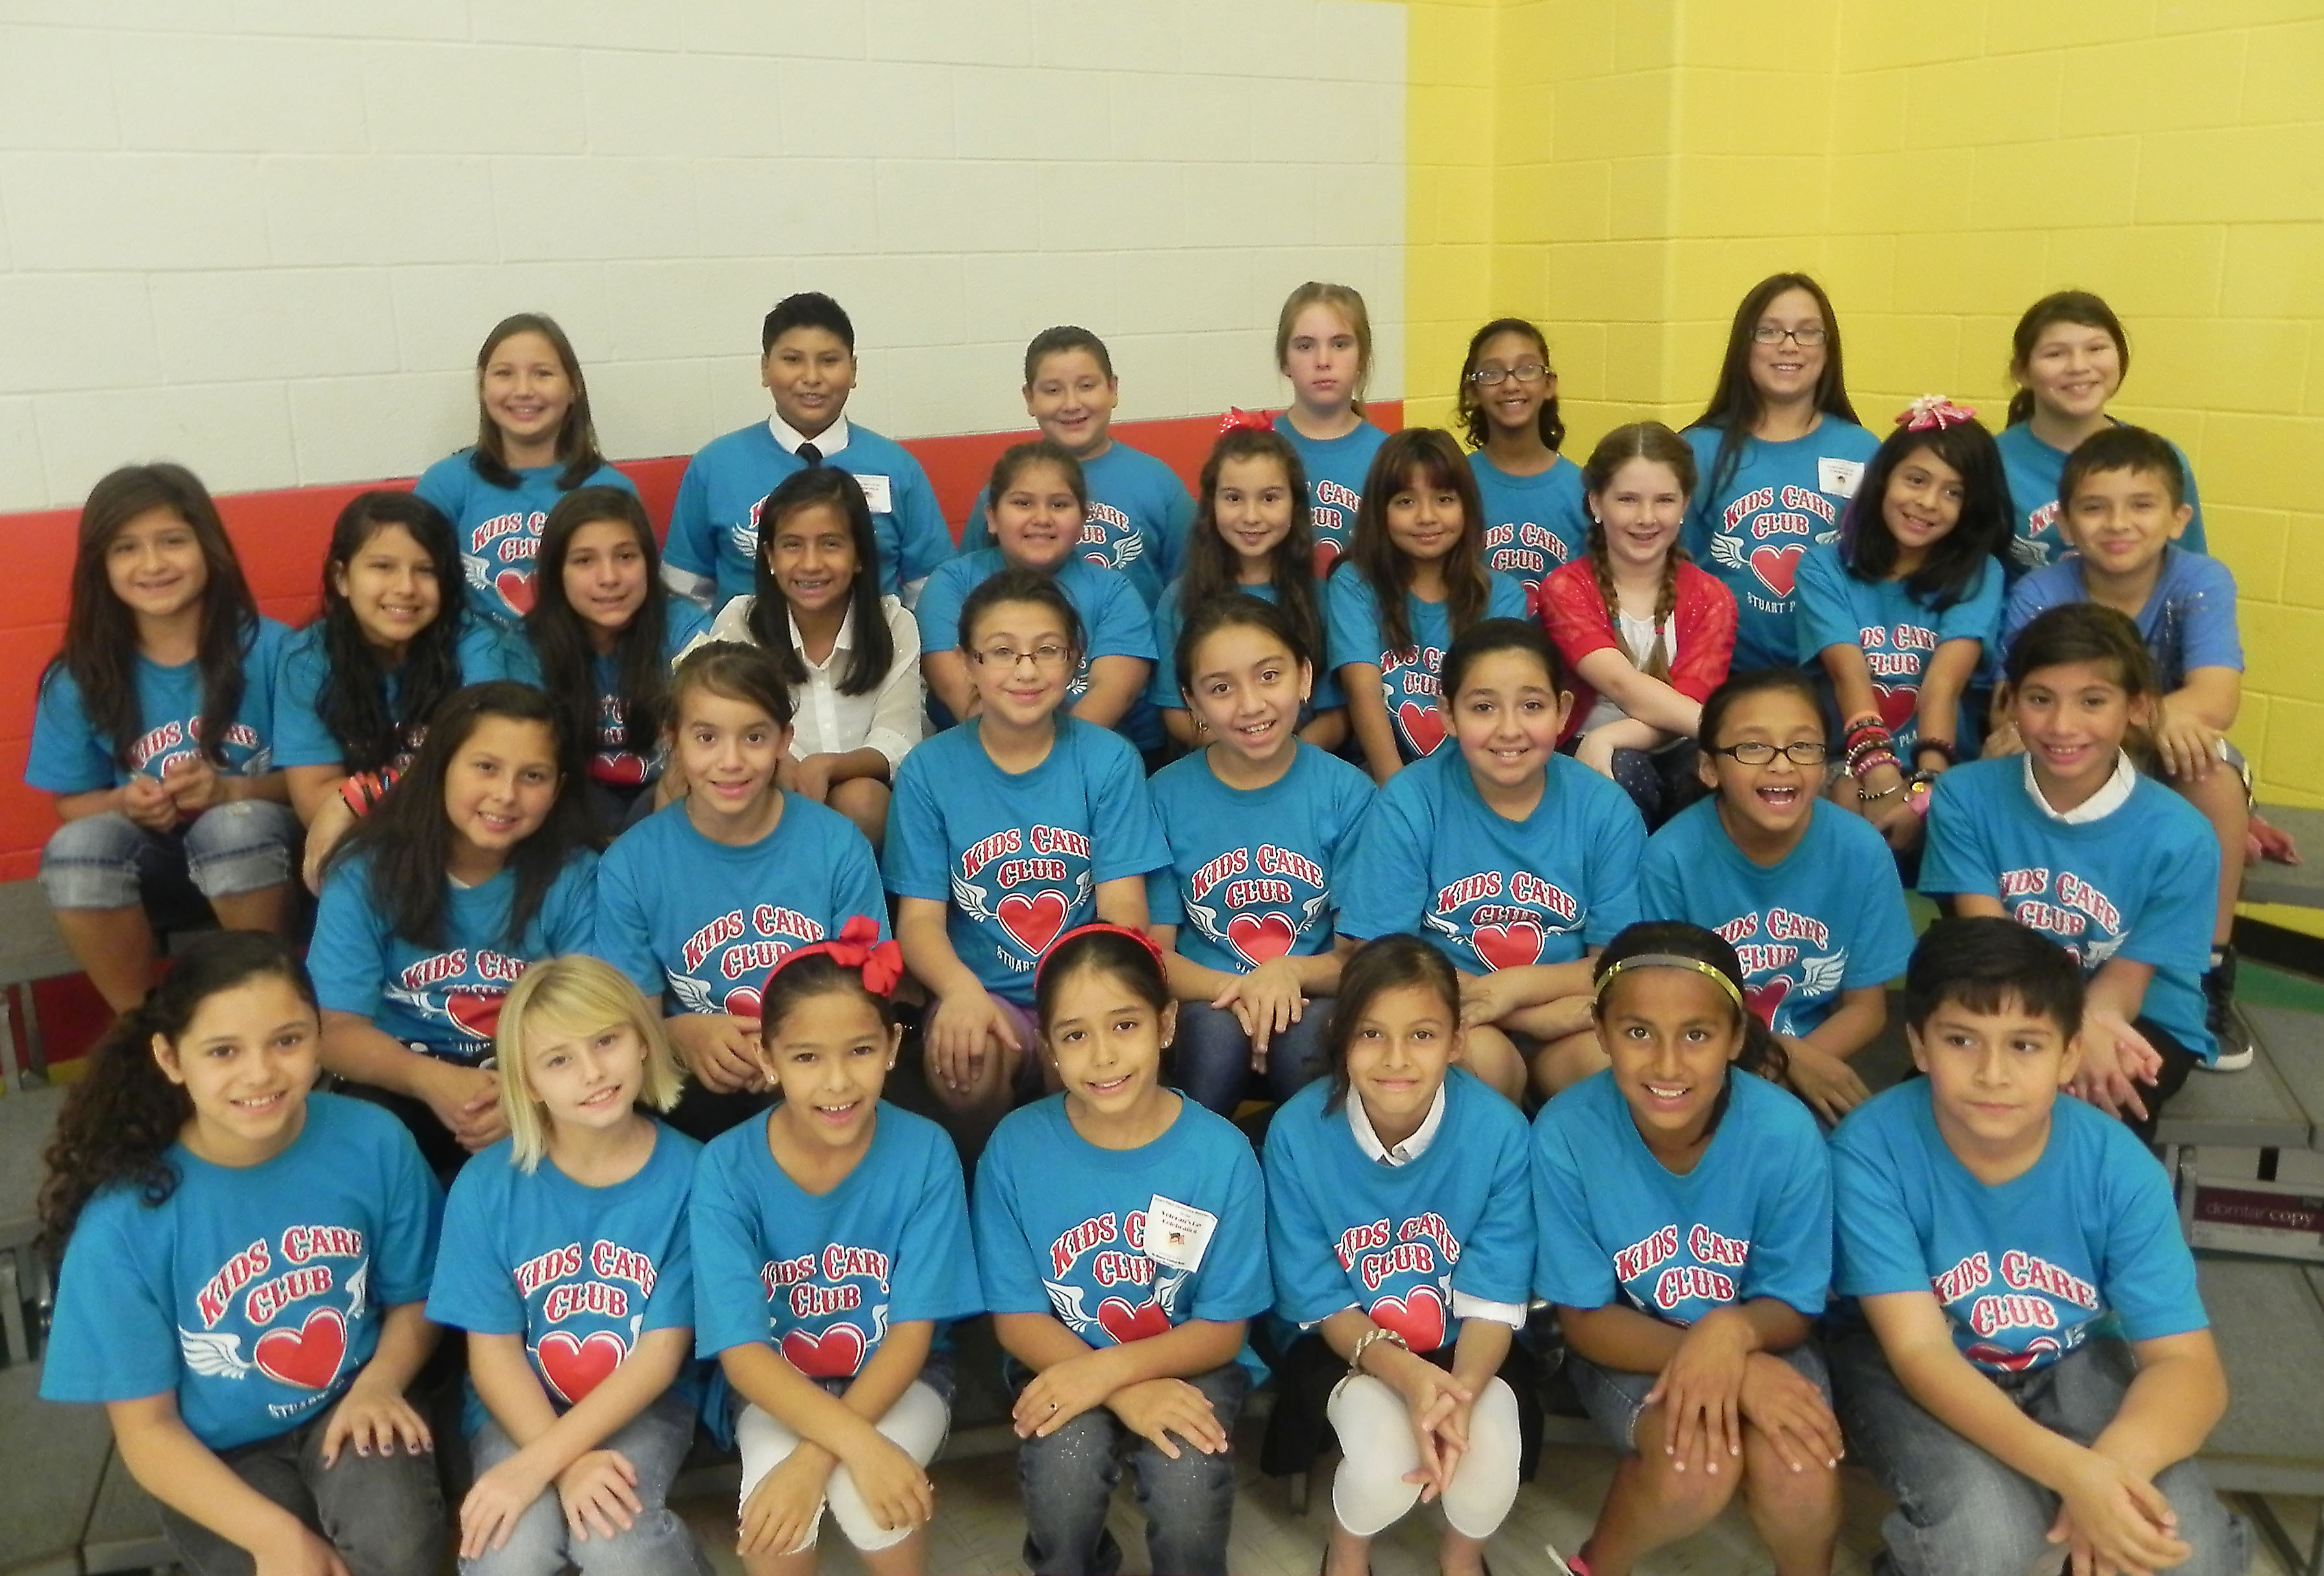 Stuart Place Kids Care Club gives back to campus and community